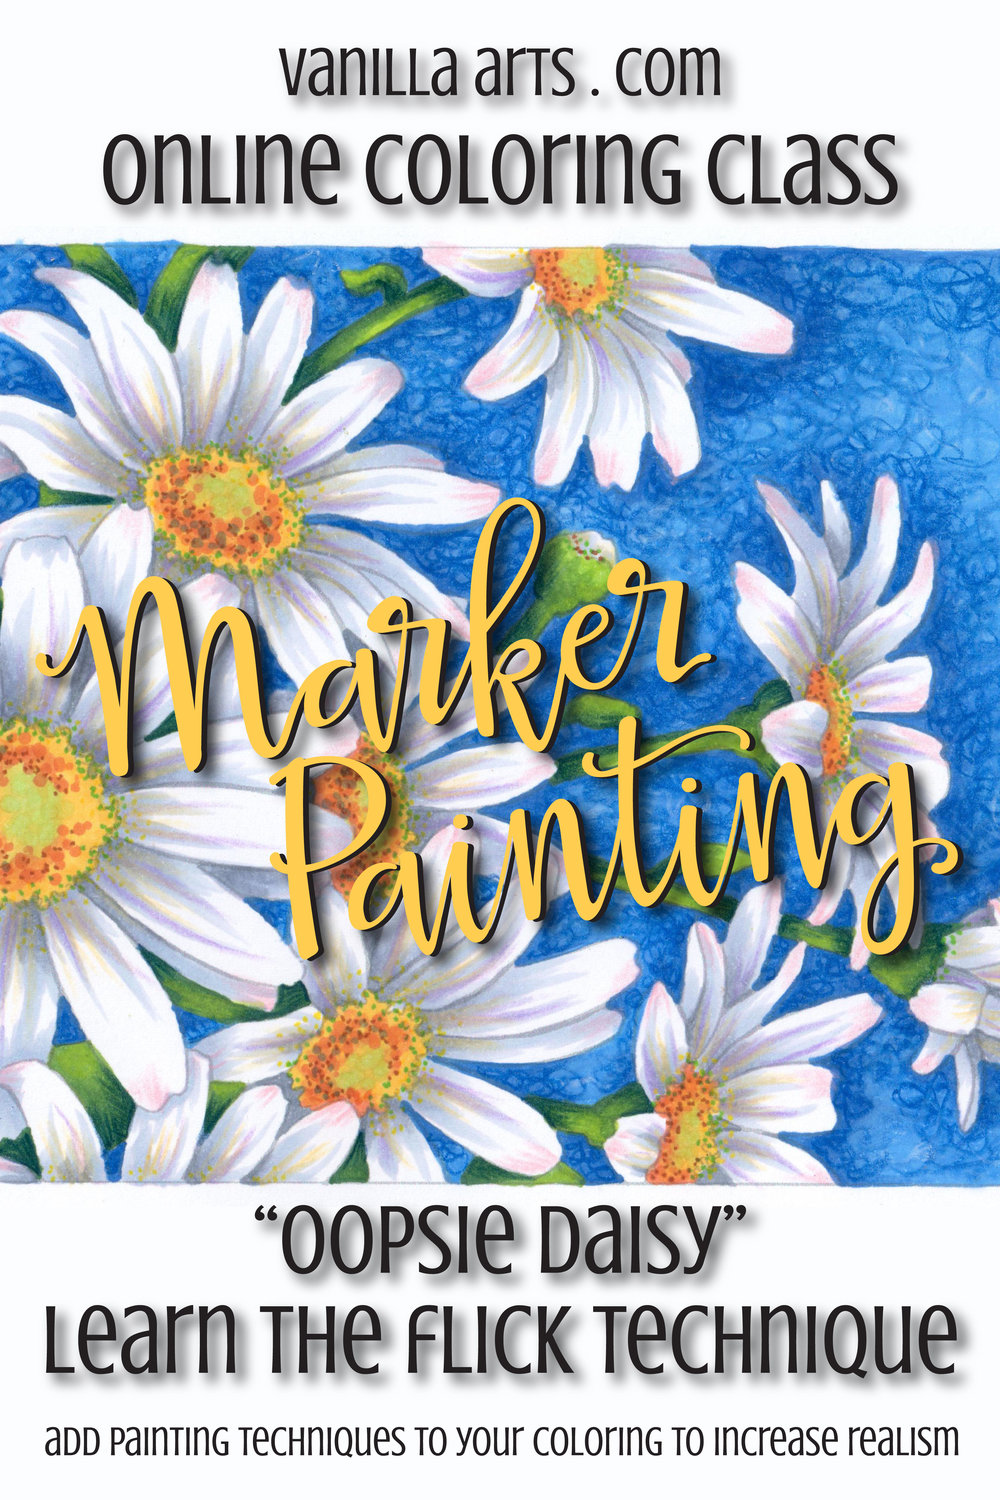 Marker Painting Basics Oopsie Daisy Online Class Learn To Use